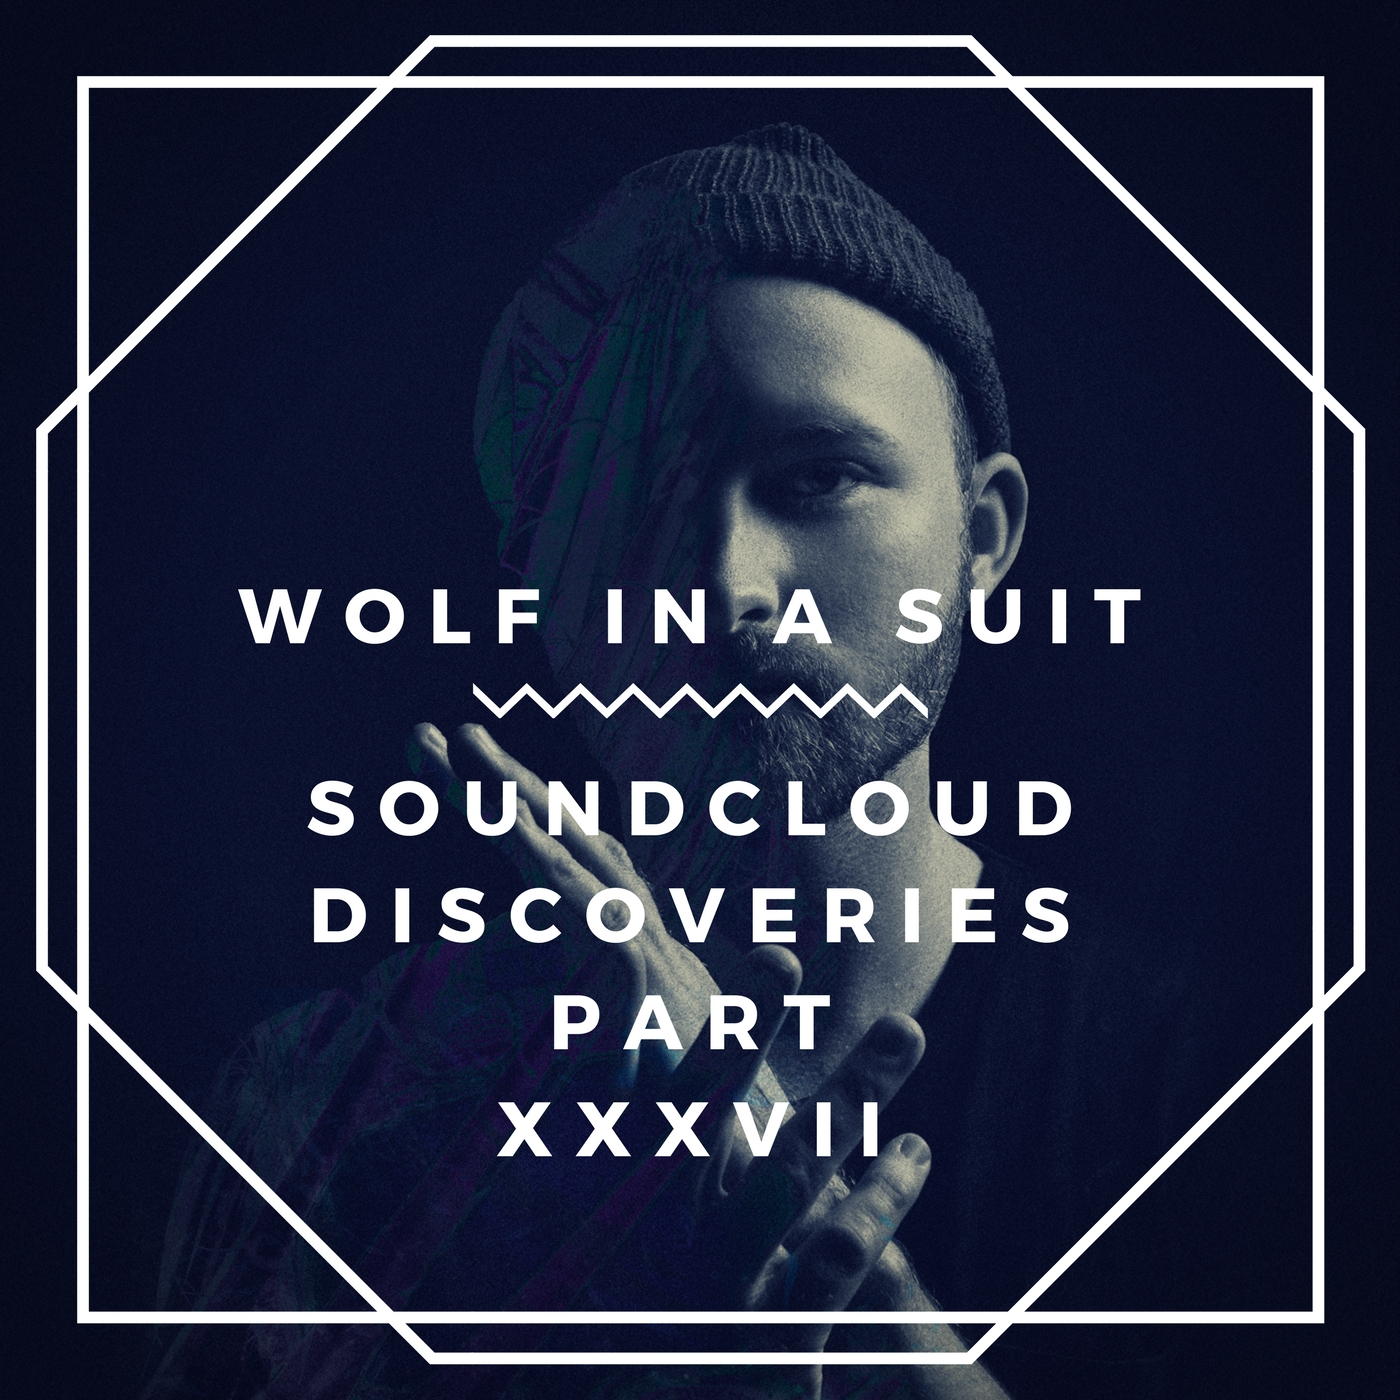 Playlist- Soundcloud Discoveries Part XXXVII-new music-indie music-indie rock-indie pop-music blog-indie blog-wolfinasuit-wolf in a suit